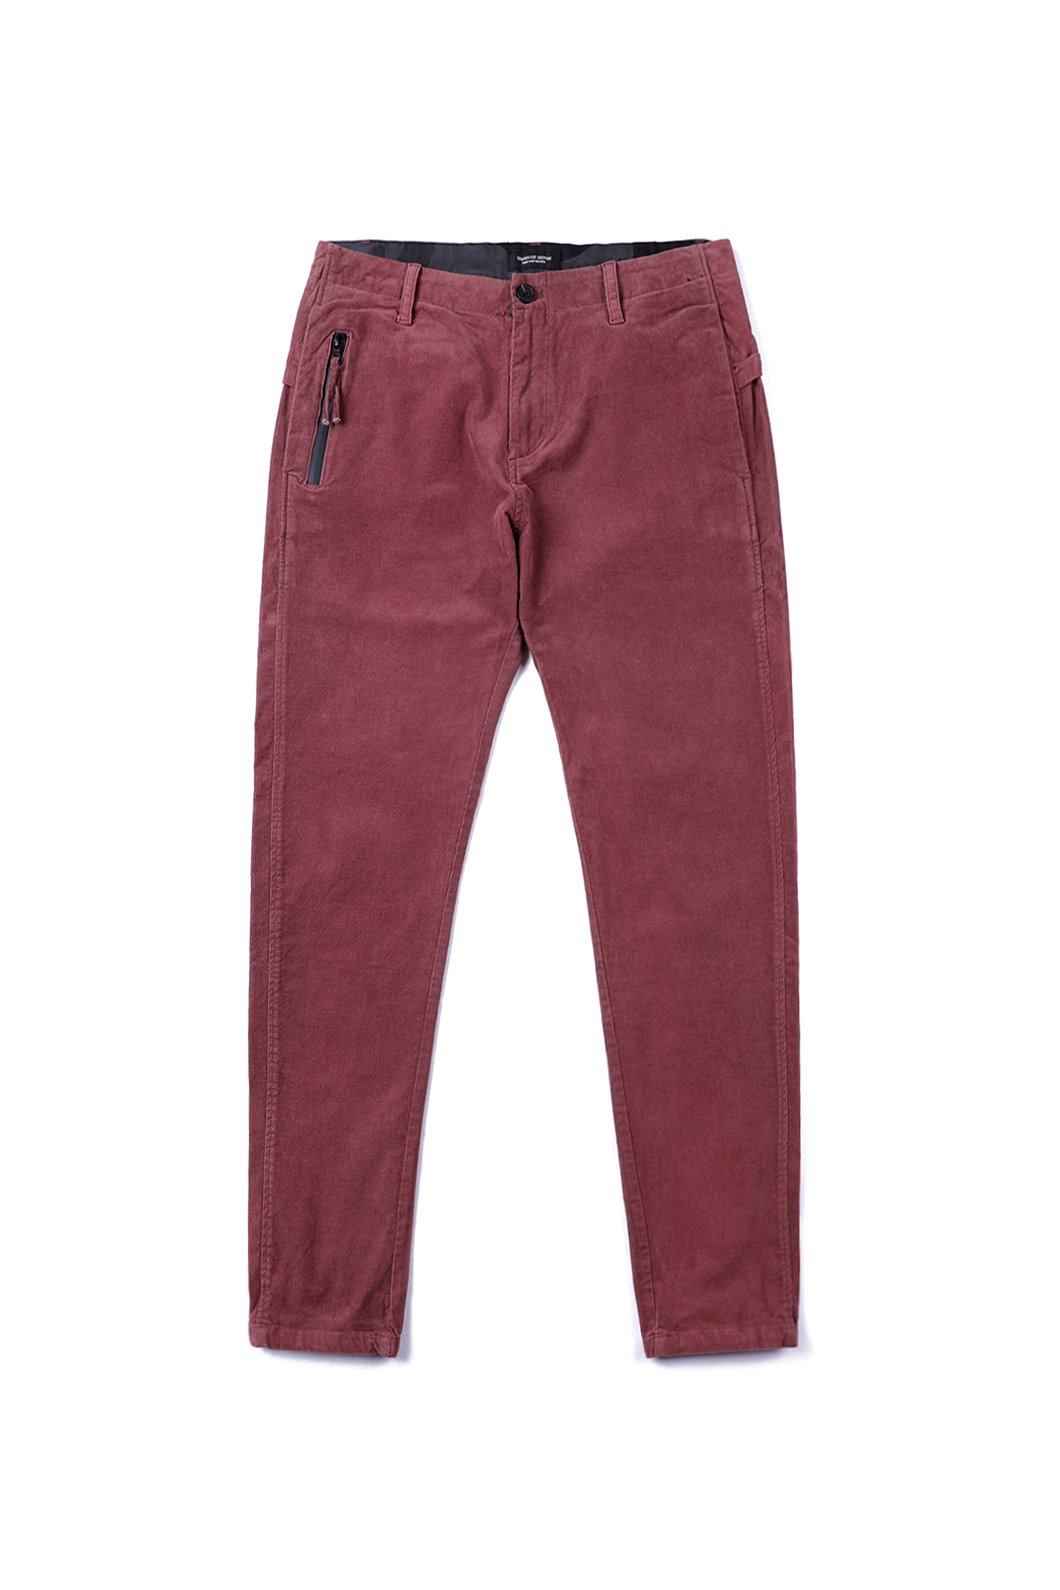 Elpidia corduroy pants -2Color2차 소량 추가입고